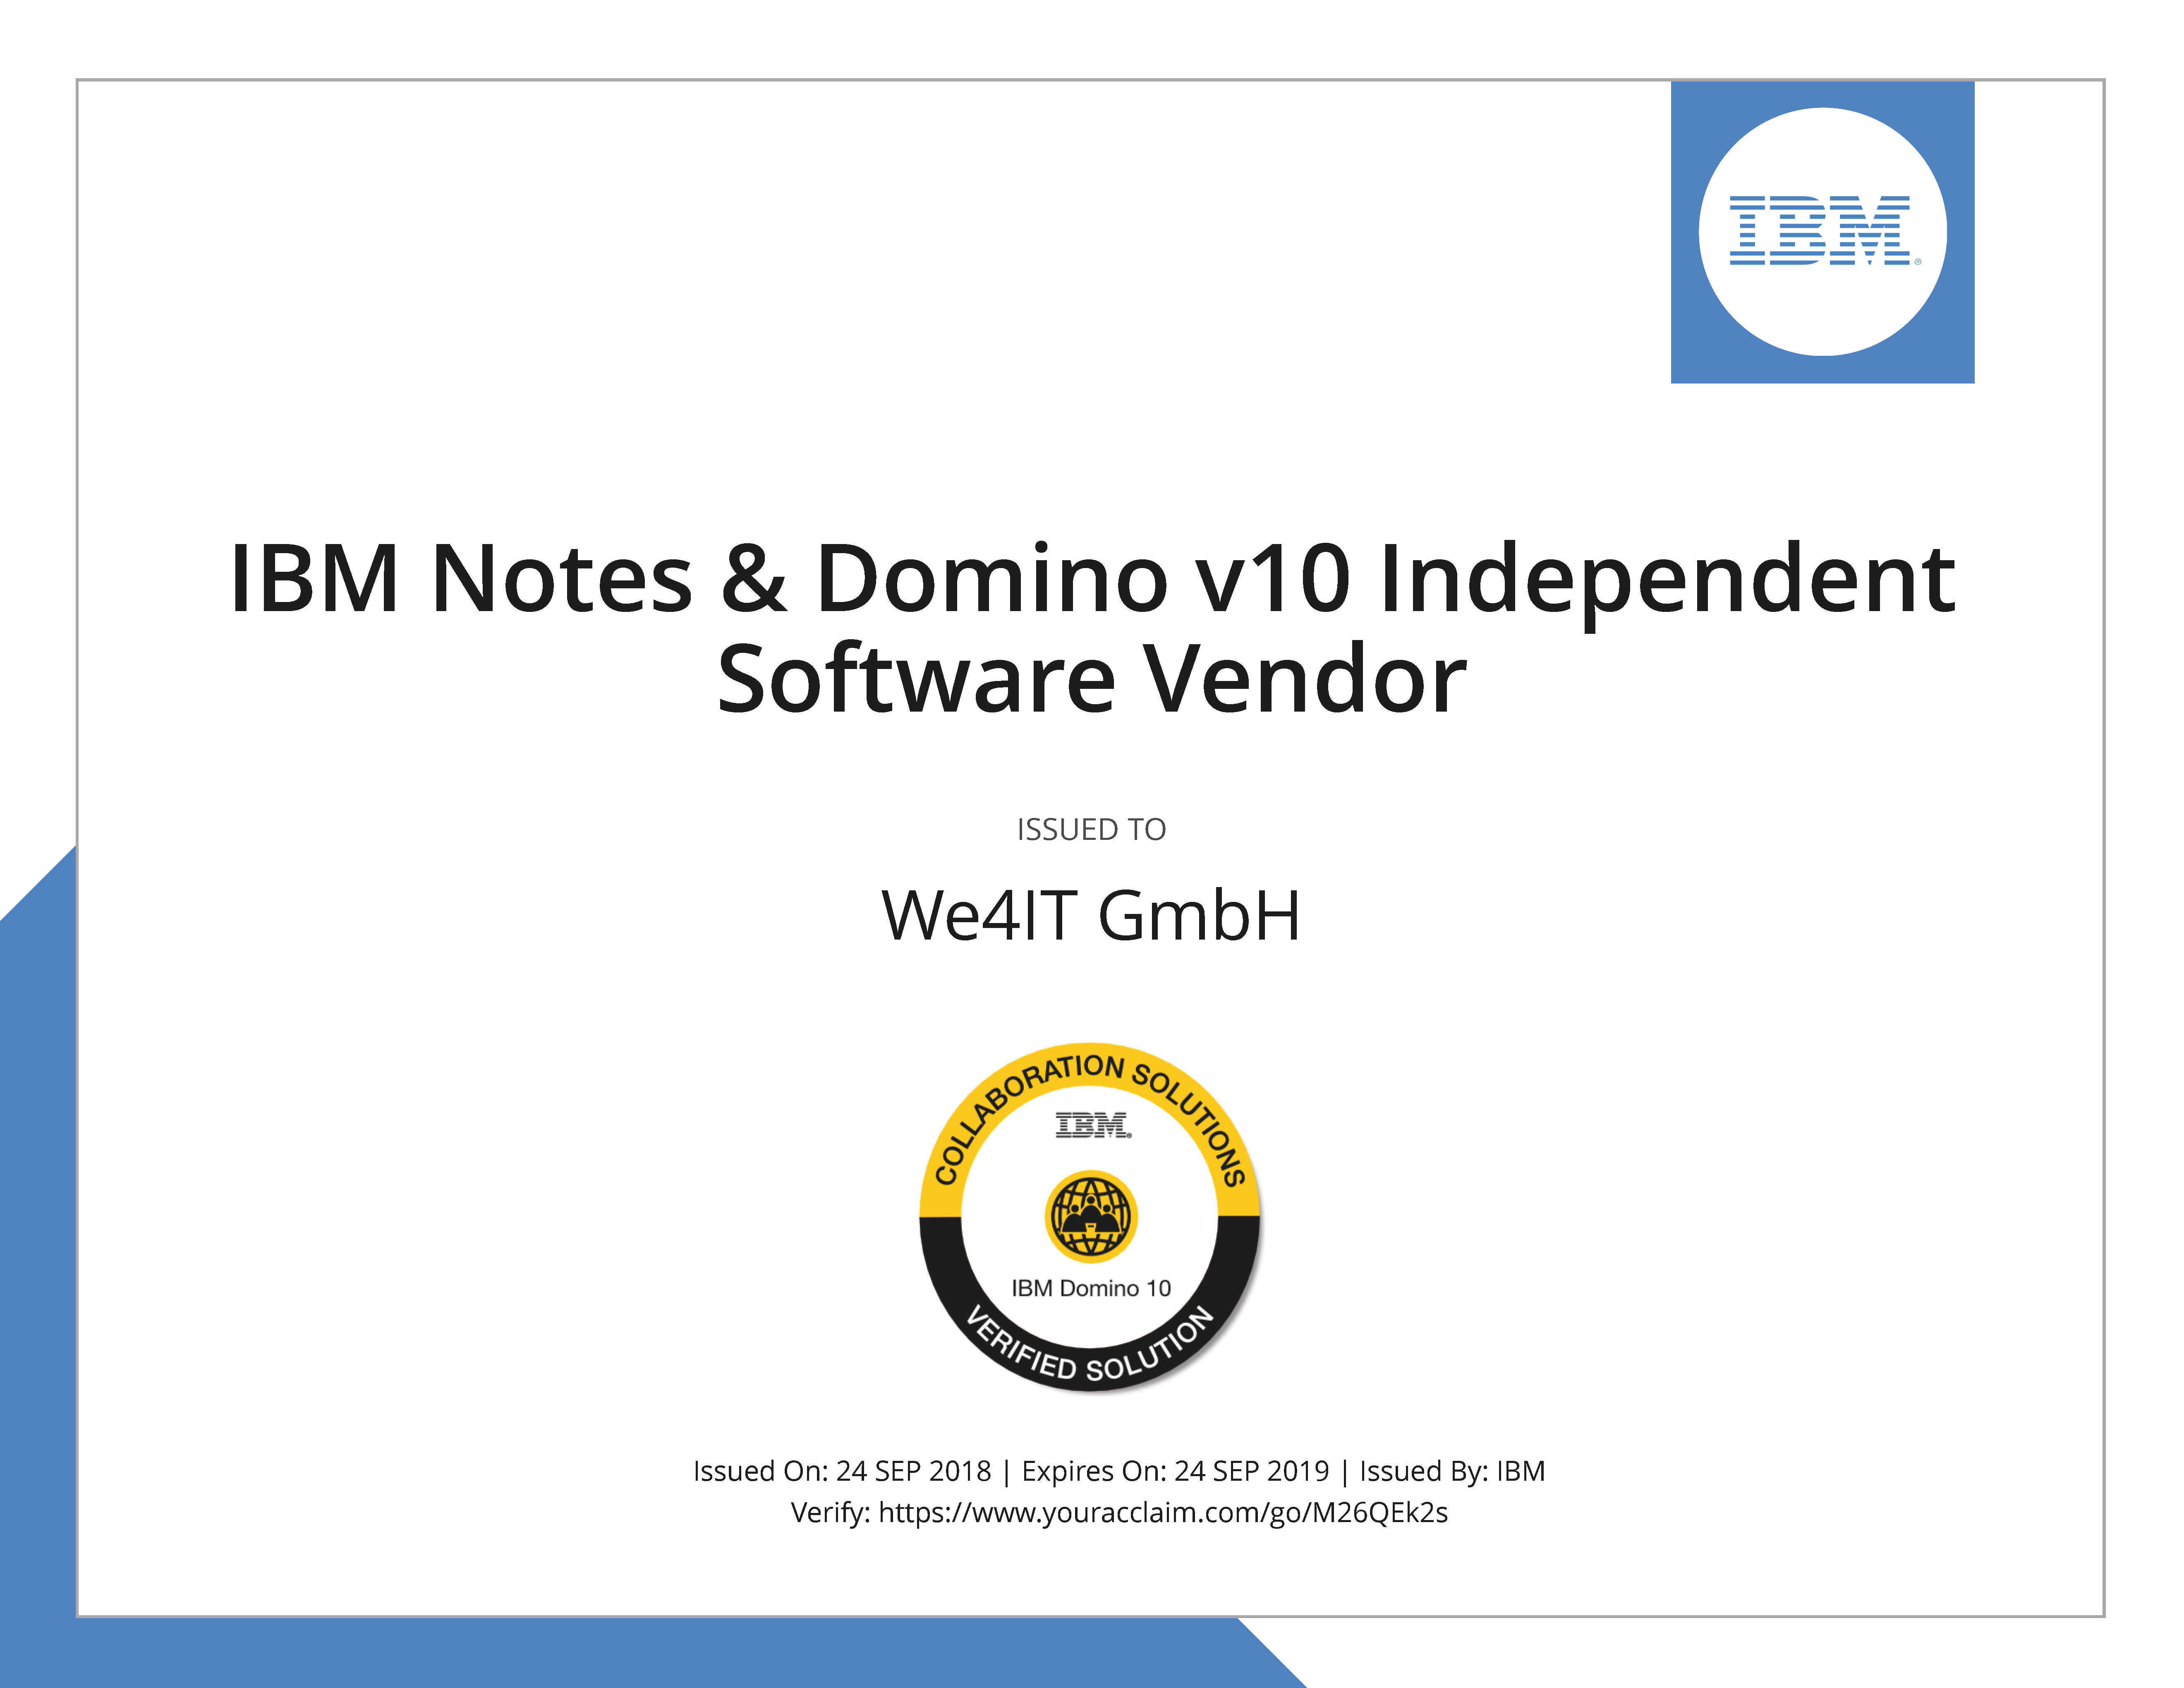 IBM_Notes___Domino_v10_Independent_Software_Vendor_Badge20180927-10-1wg4aco